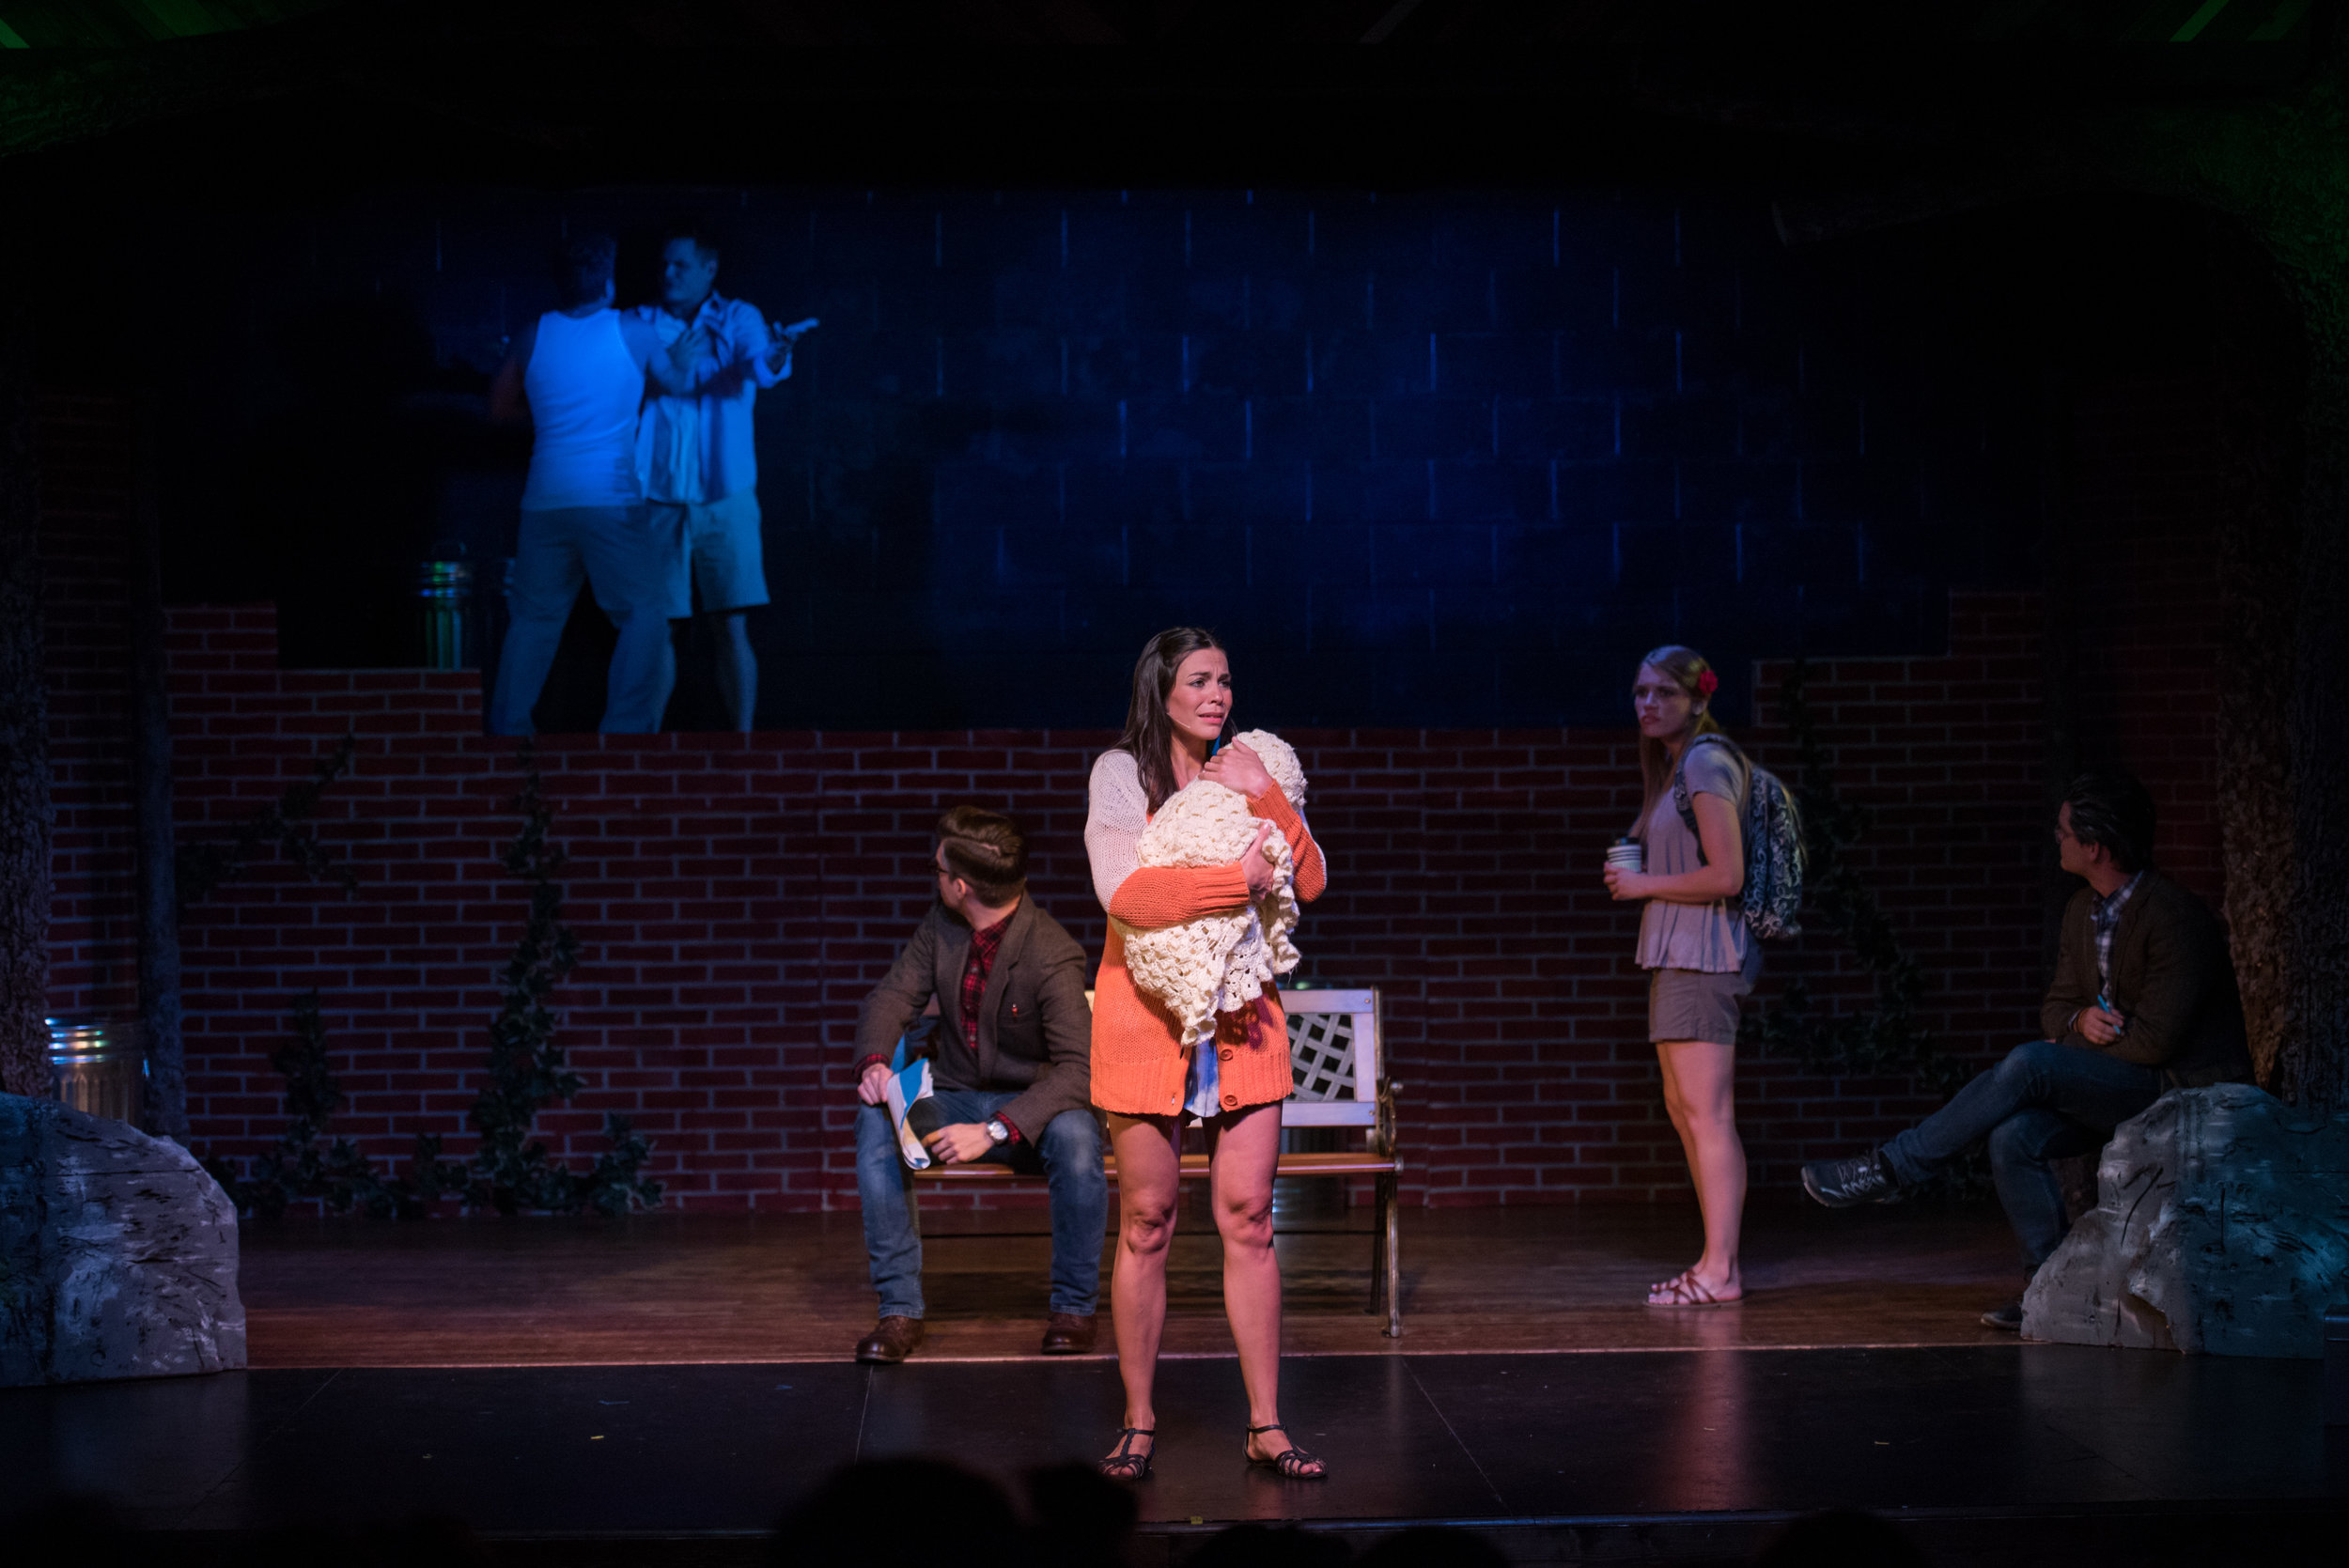 Through flashbacks done through creative staging, Nod's life is showcased from infancy to adolescence to college student--all bearing impressions on who he became as an adult.